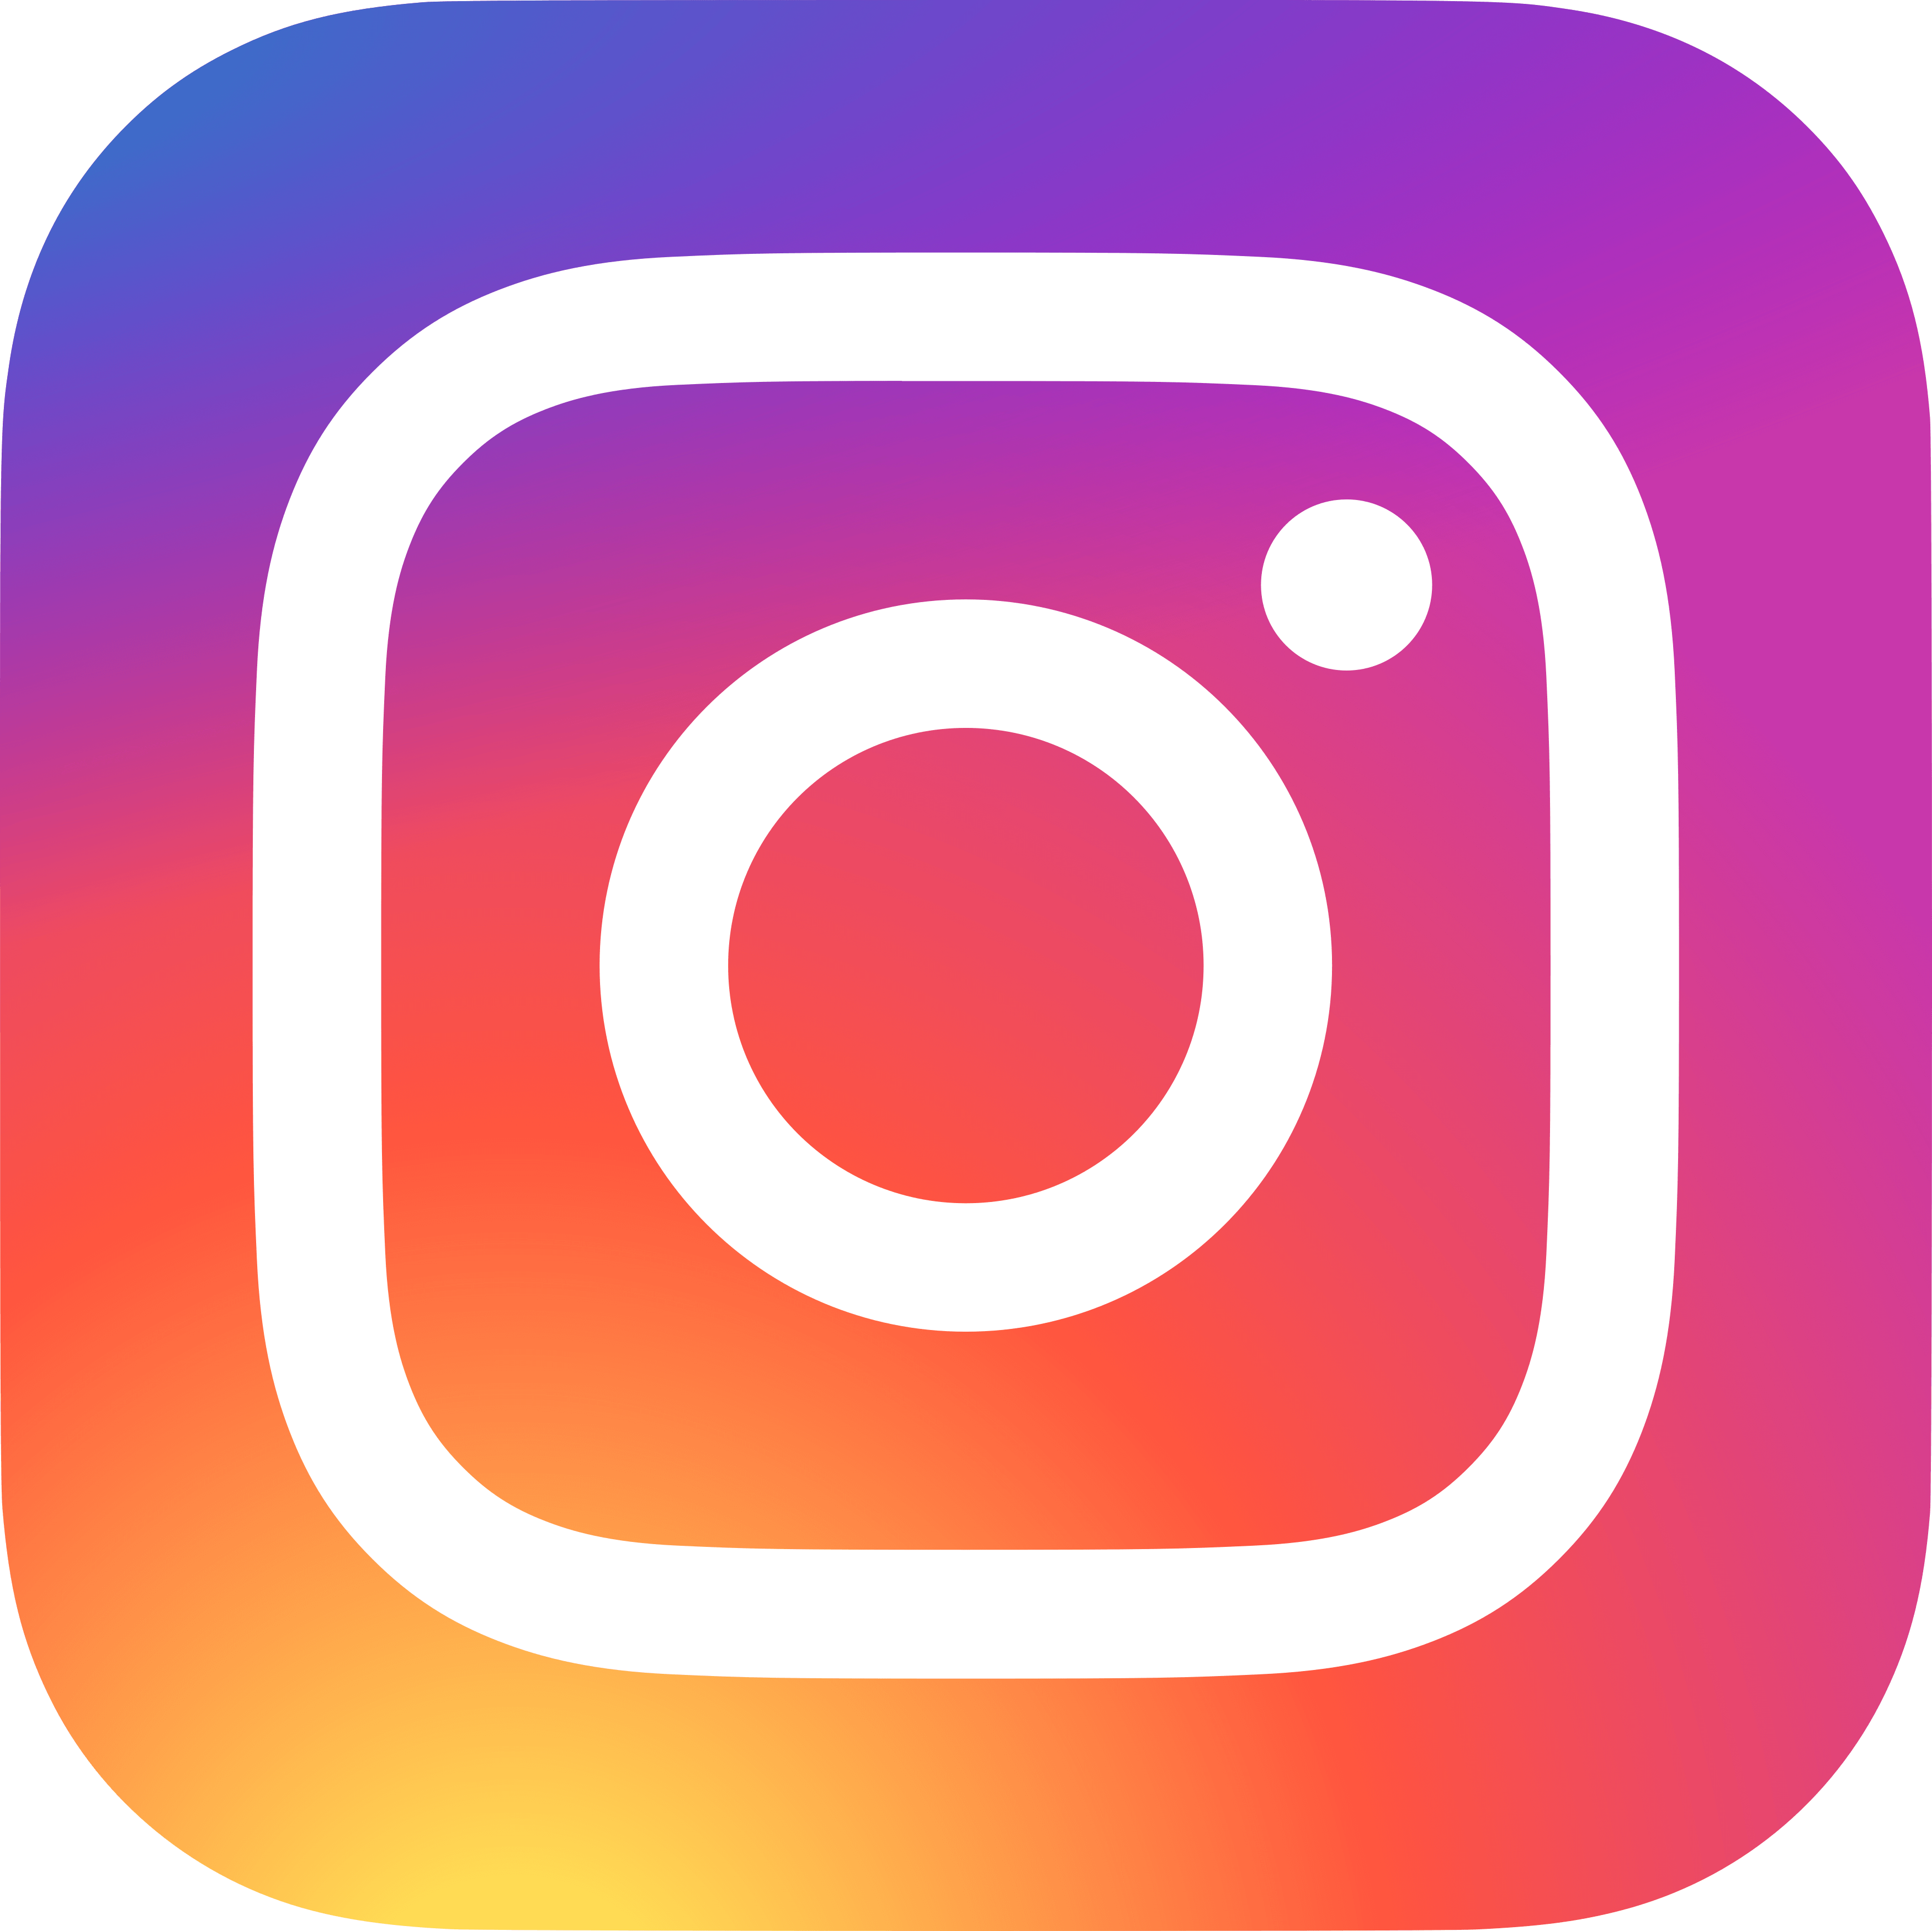 Instagram Logo Free Pictures png